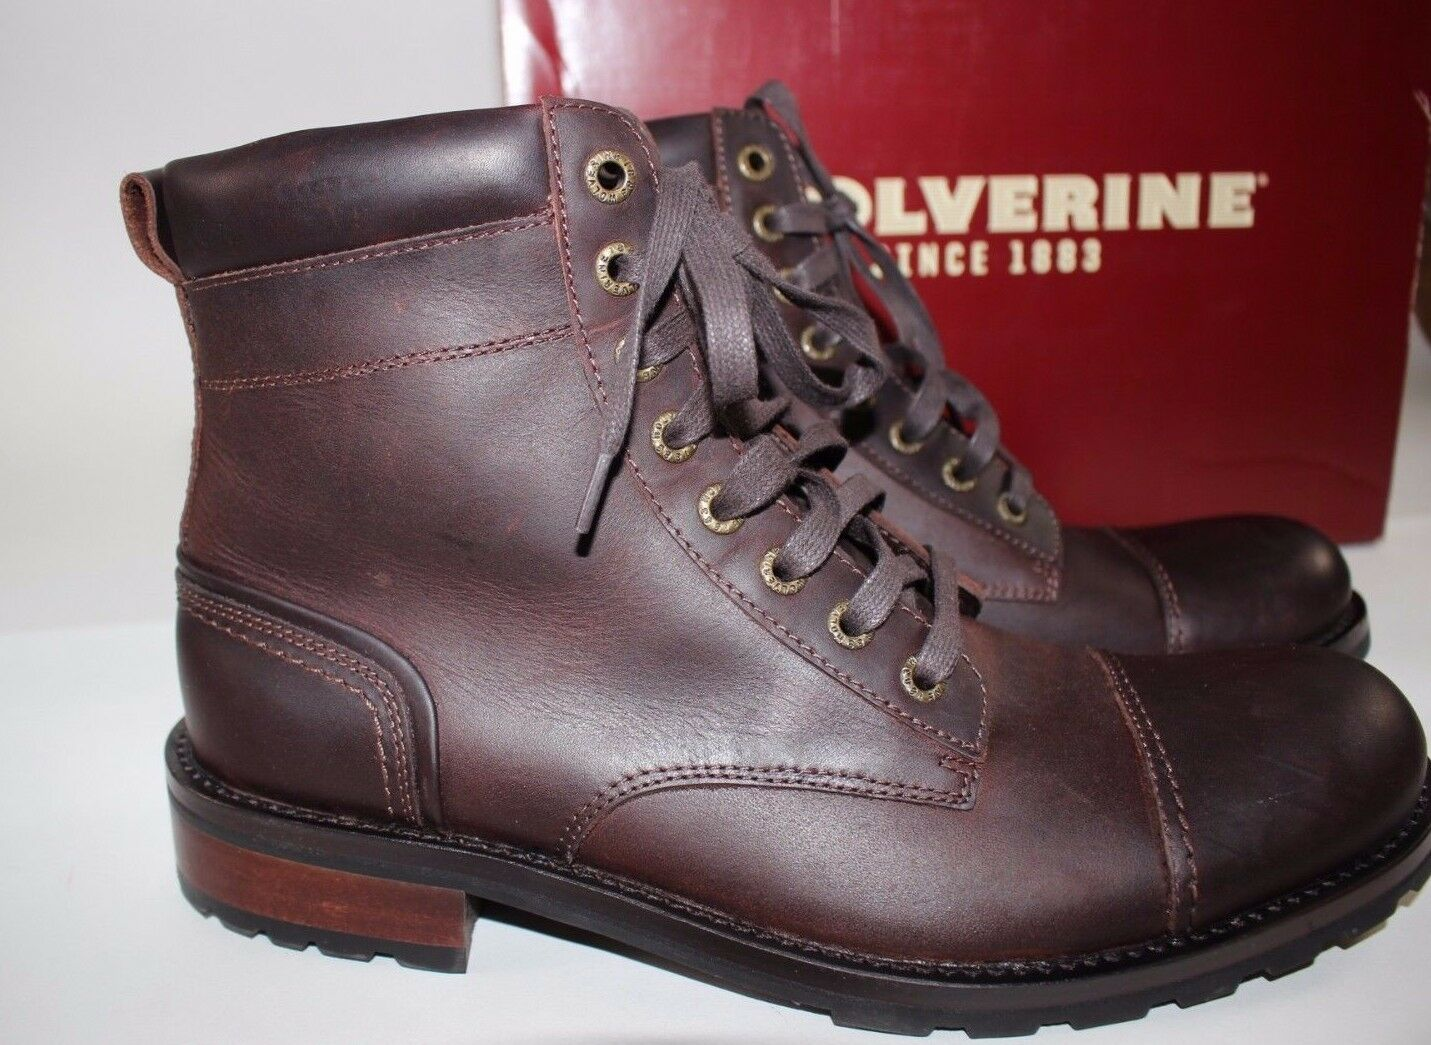 e601cf124c6 Wolverine Size 10 Men's Dark Brown 100 Leather Reese Cap Toe Combat Boot